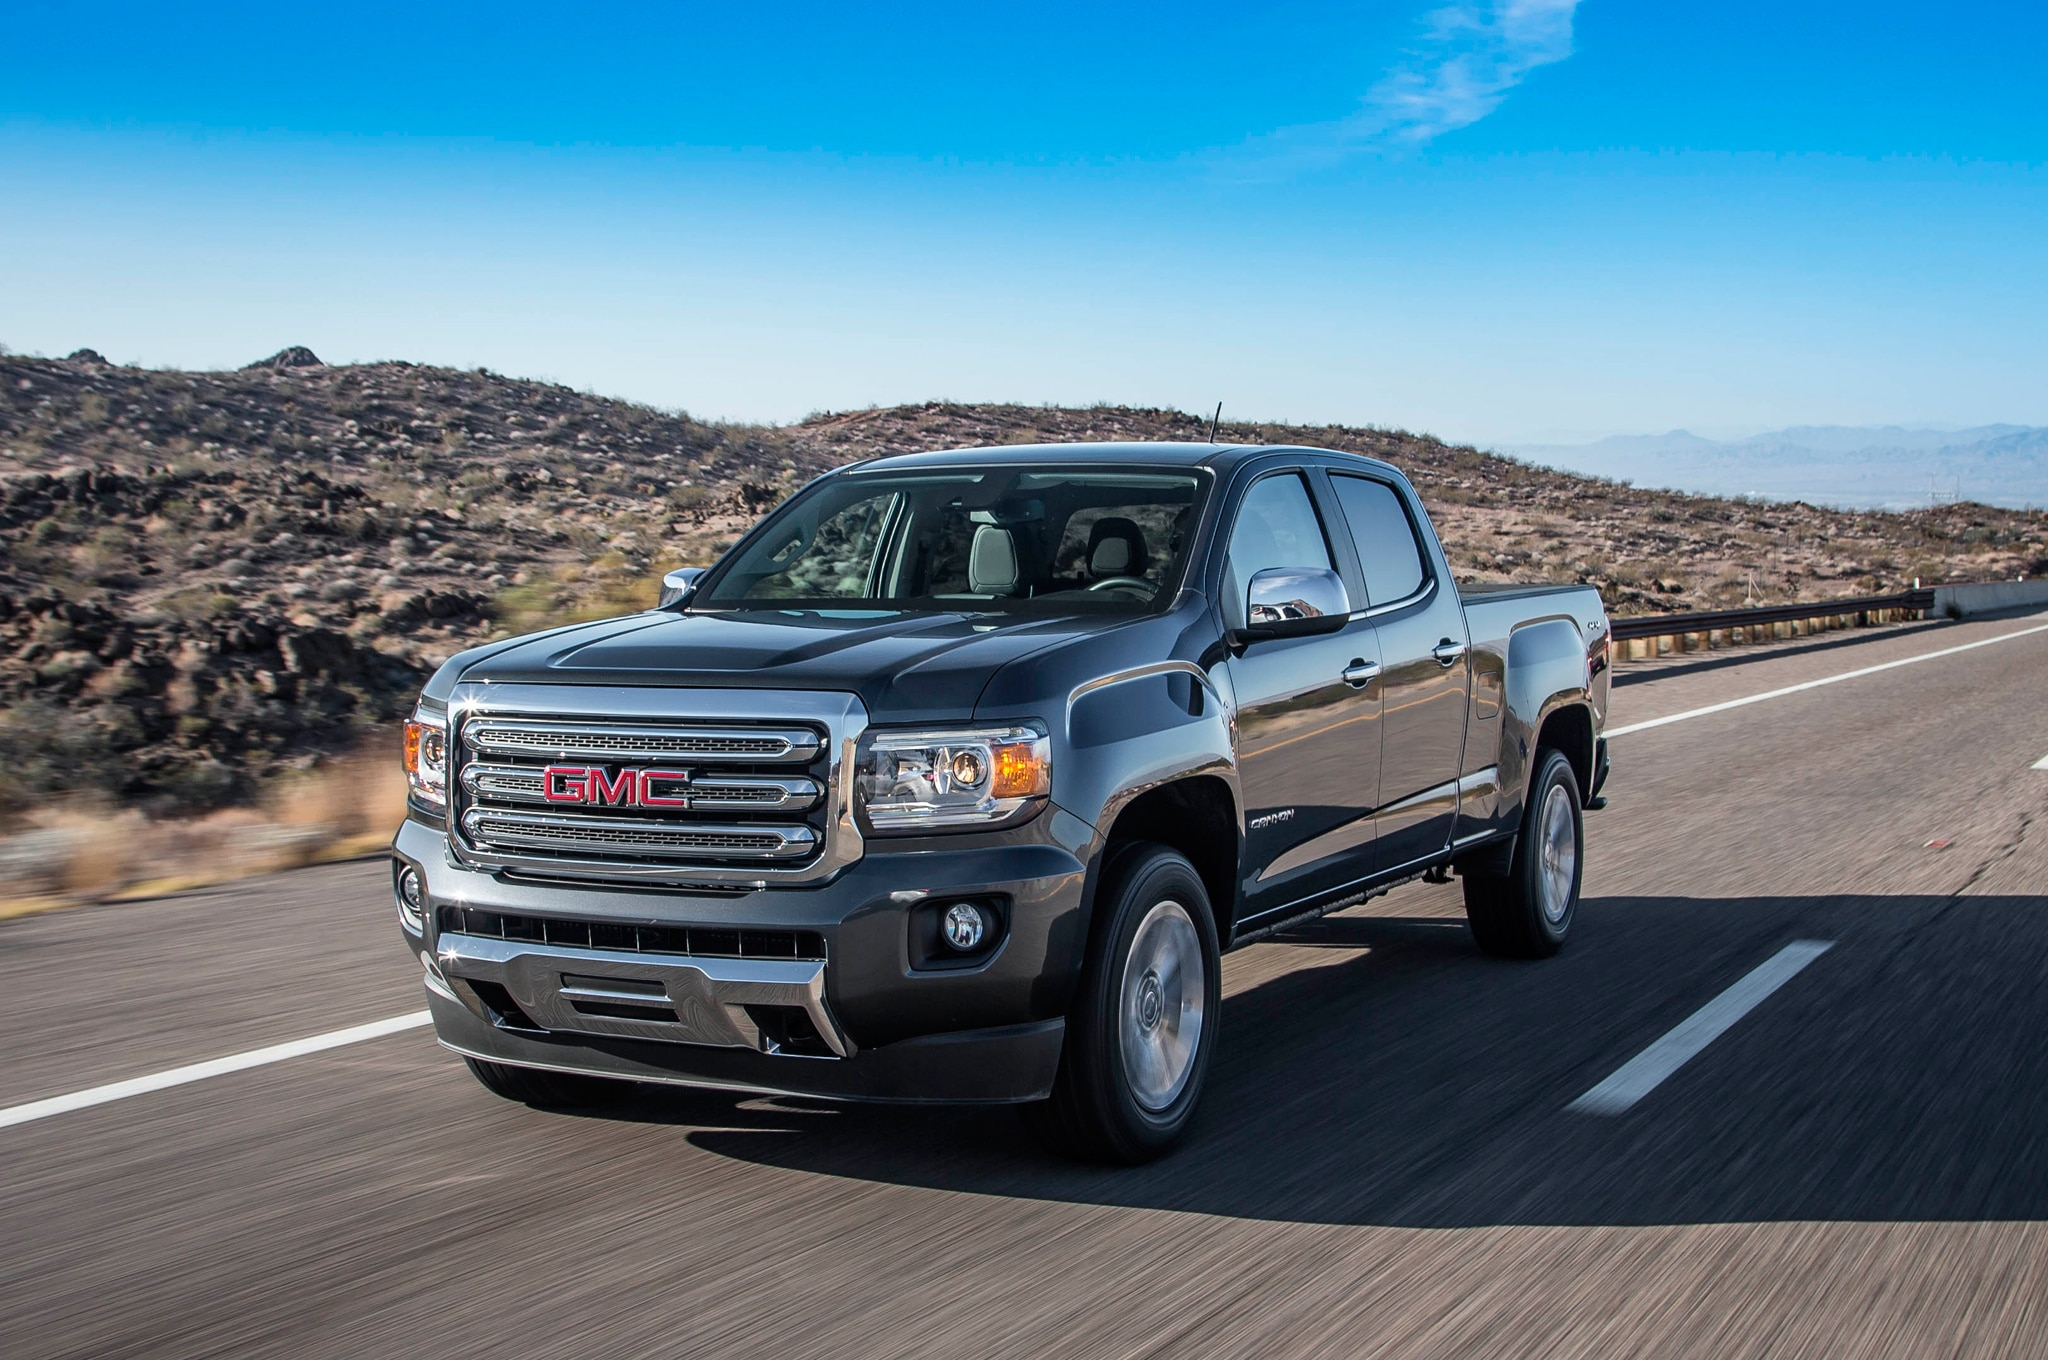 2015 GMC Canyon SLT Crew Cab V-6 4WD Review